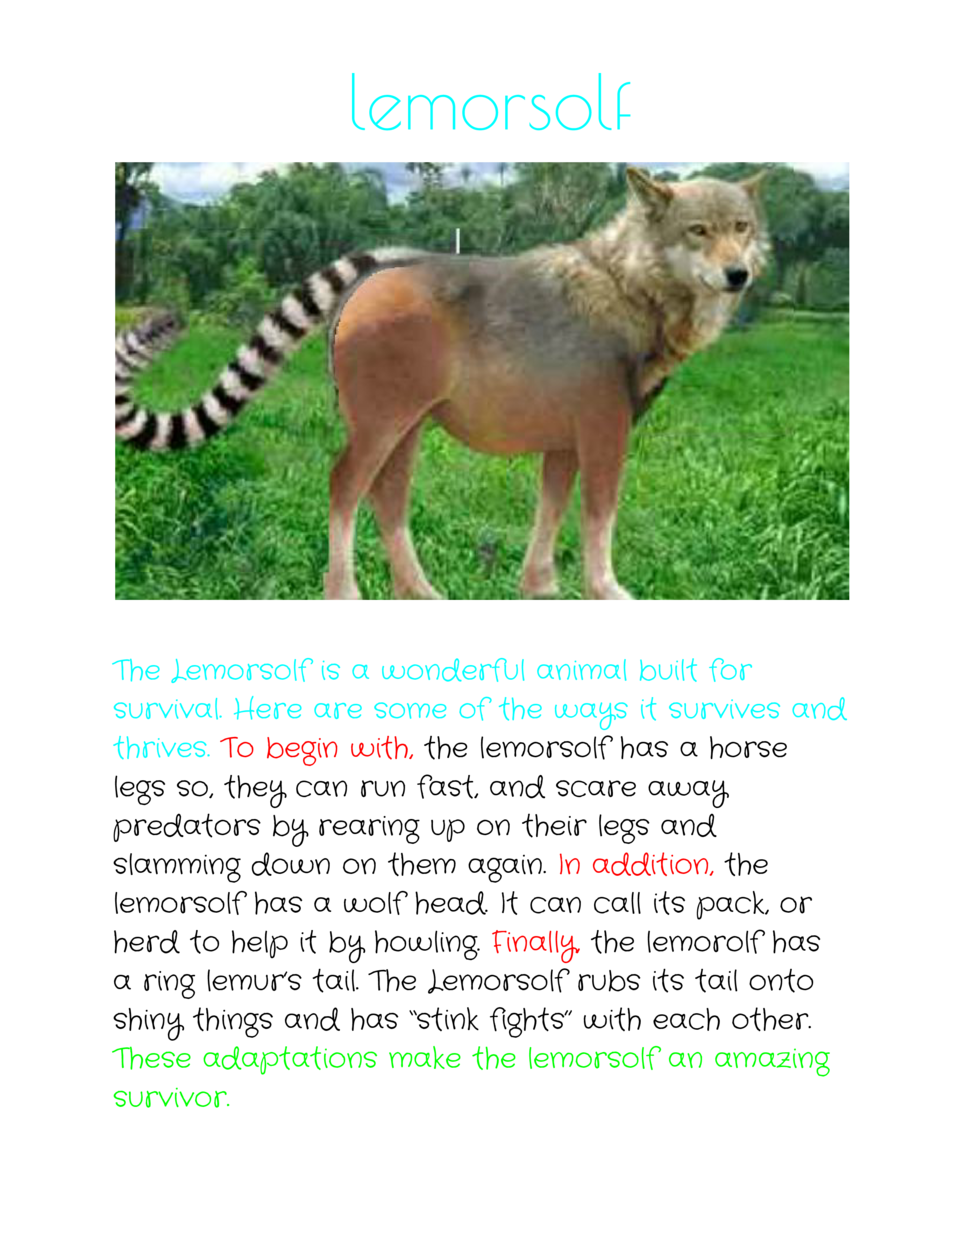 lemorsolf      The Lemorsolf is a wonderful animal built for survival. Here are some of the ways it survives and thrives. ...